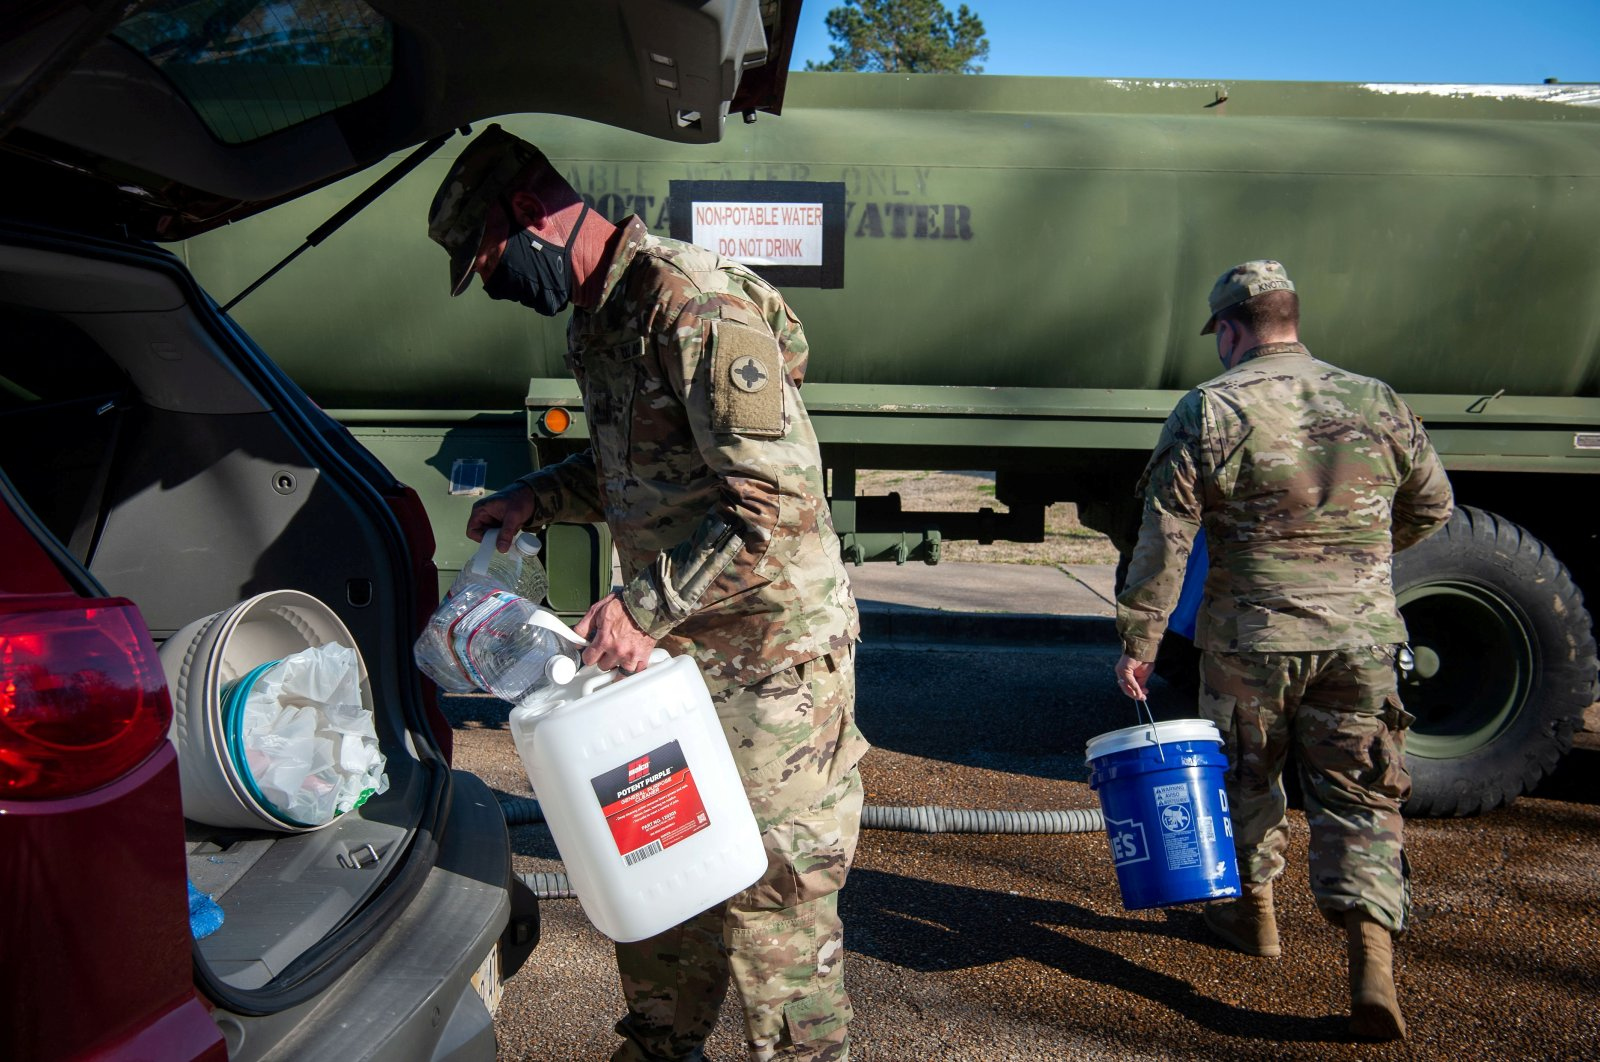 National Guard sergeants carry containers and a bucket to fill with water for a resident at a public water distribution site after cold weather caused large numbers of water outages in Jackson, Mississippi, U.S., March 4, 2021. (Reuters Photo)